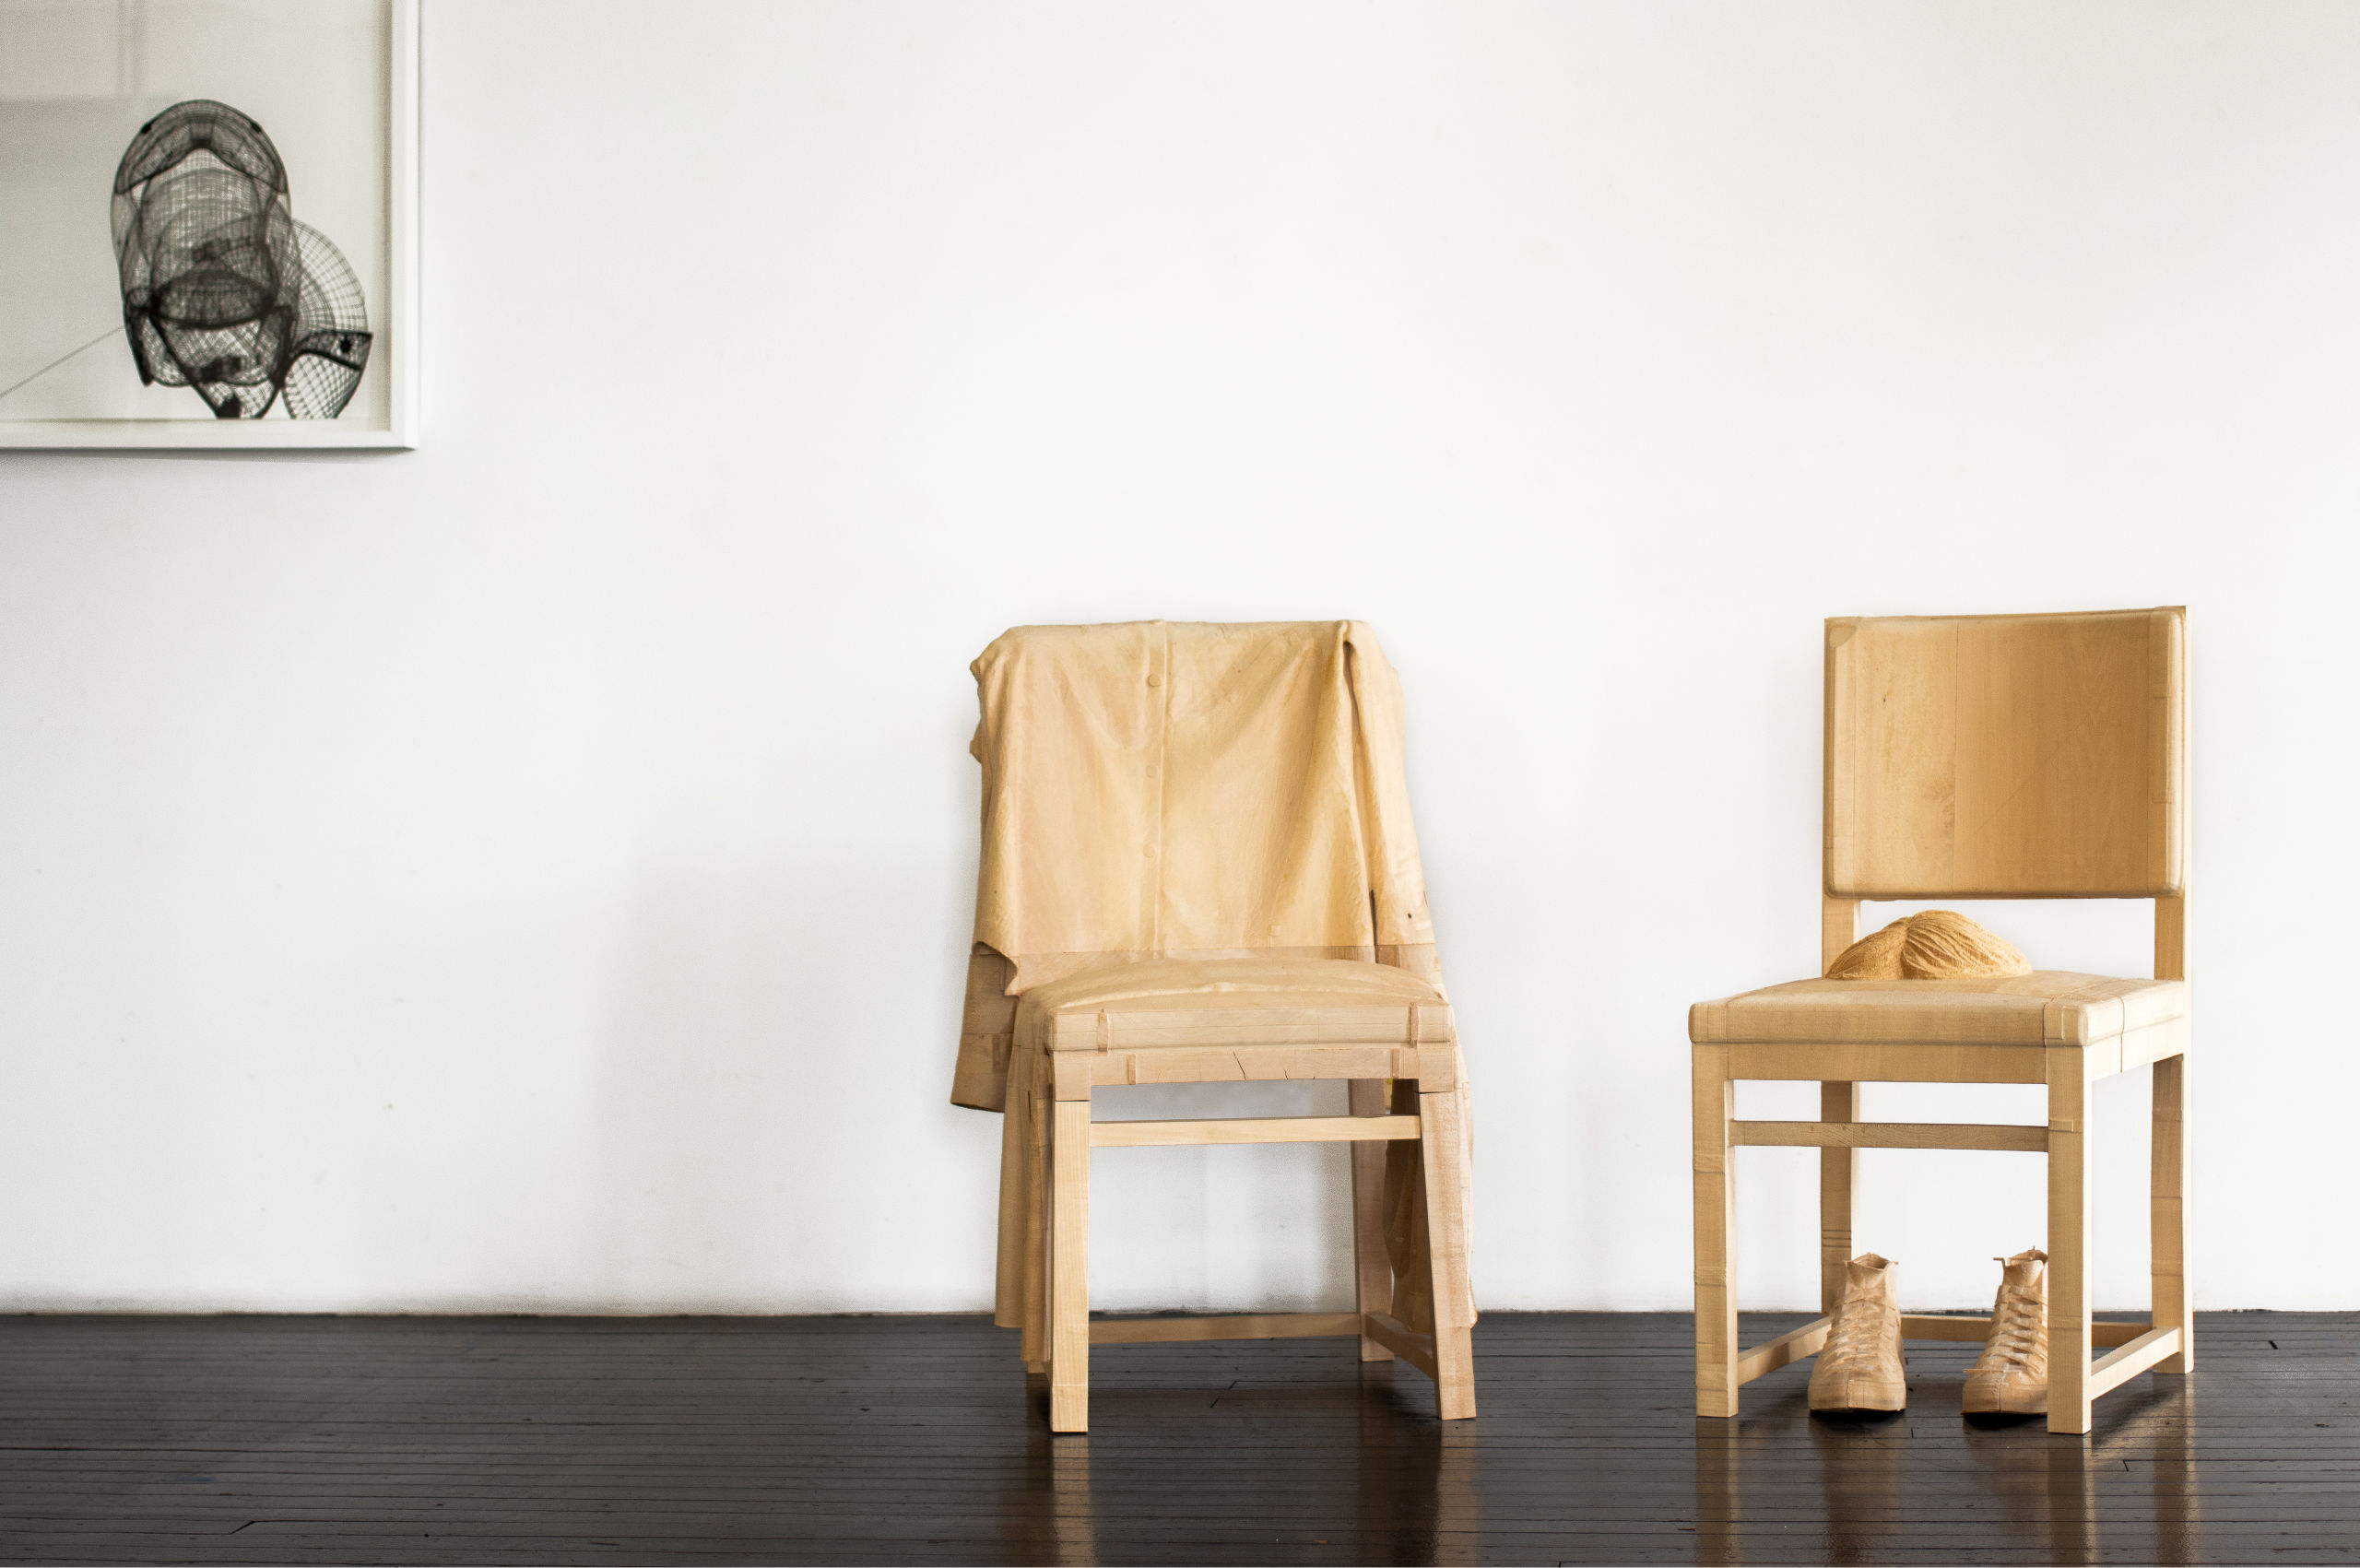 Wood sculpture of two chairs and shows next to black and white print, by Jonathan Brand.